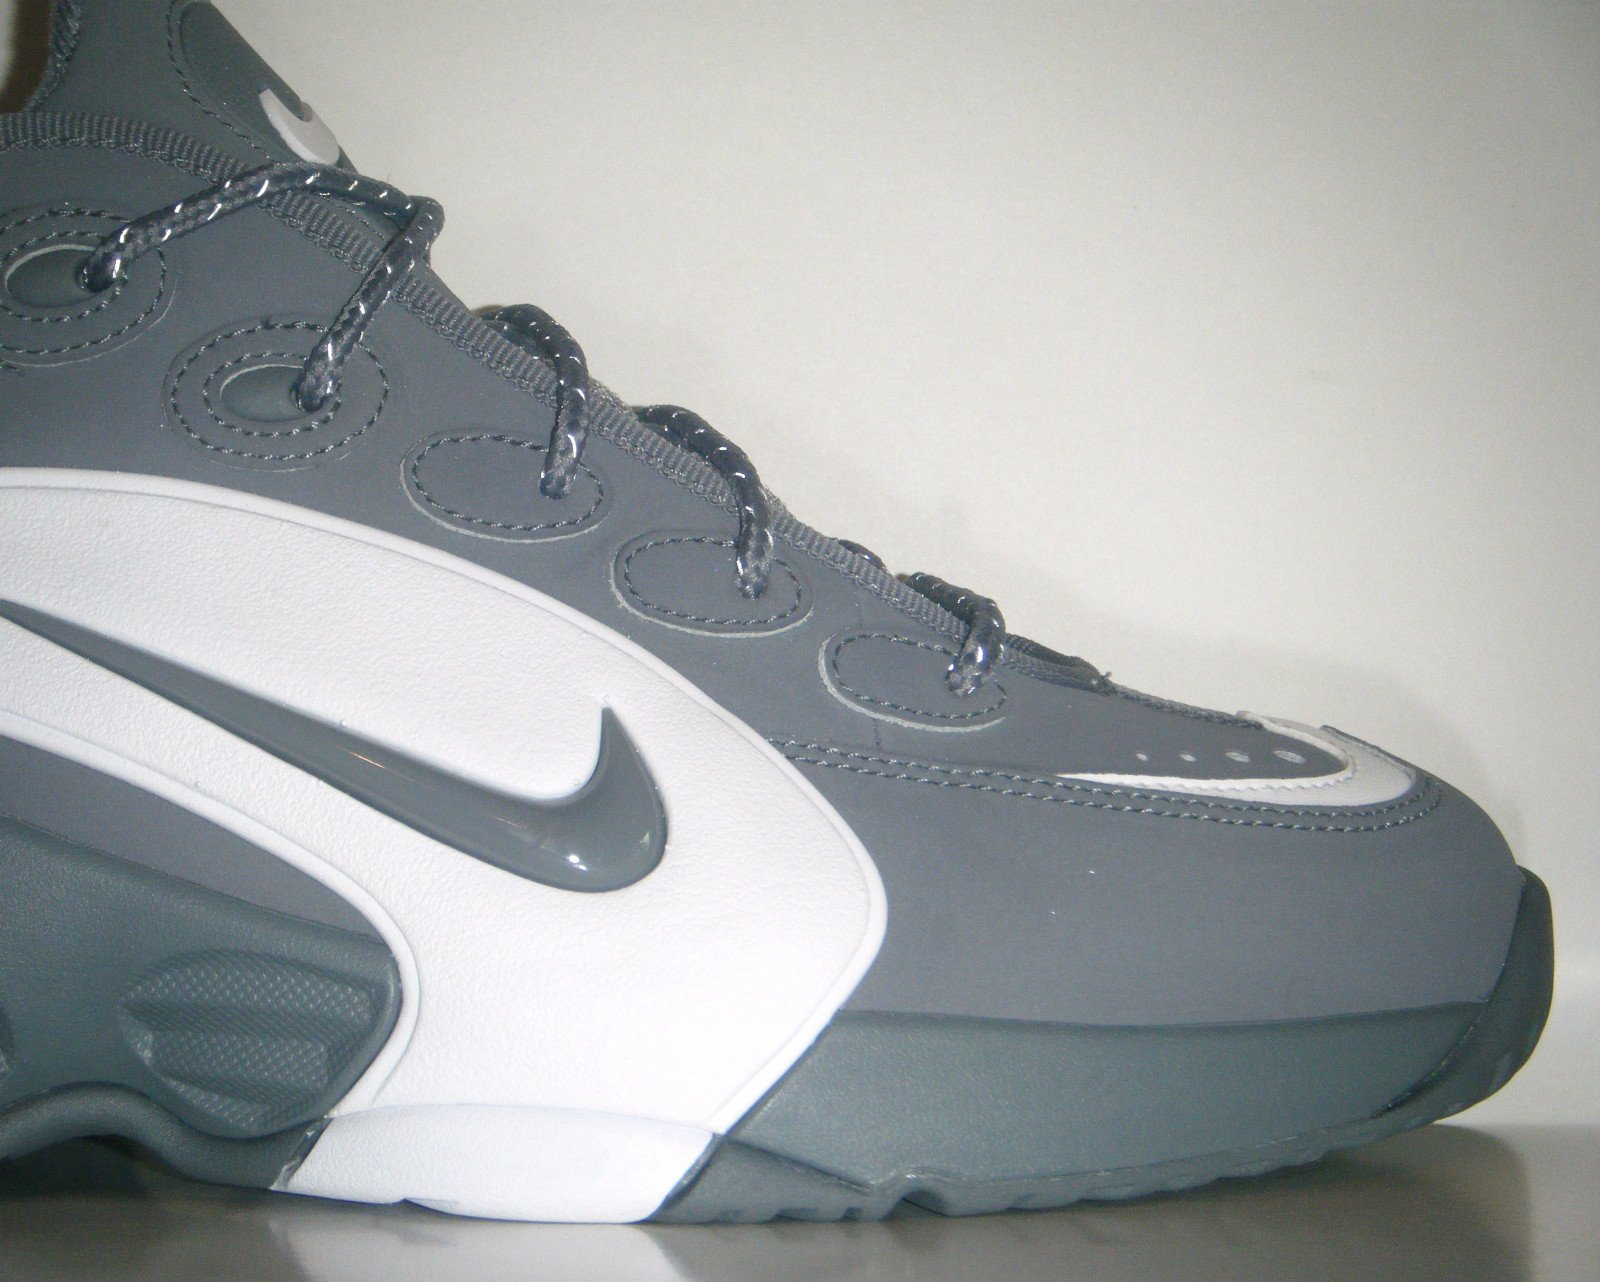 Nike Air Way Up 'Cool Grey' 2013 Retro